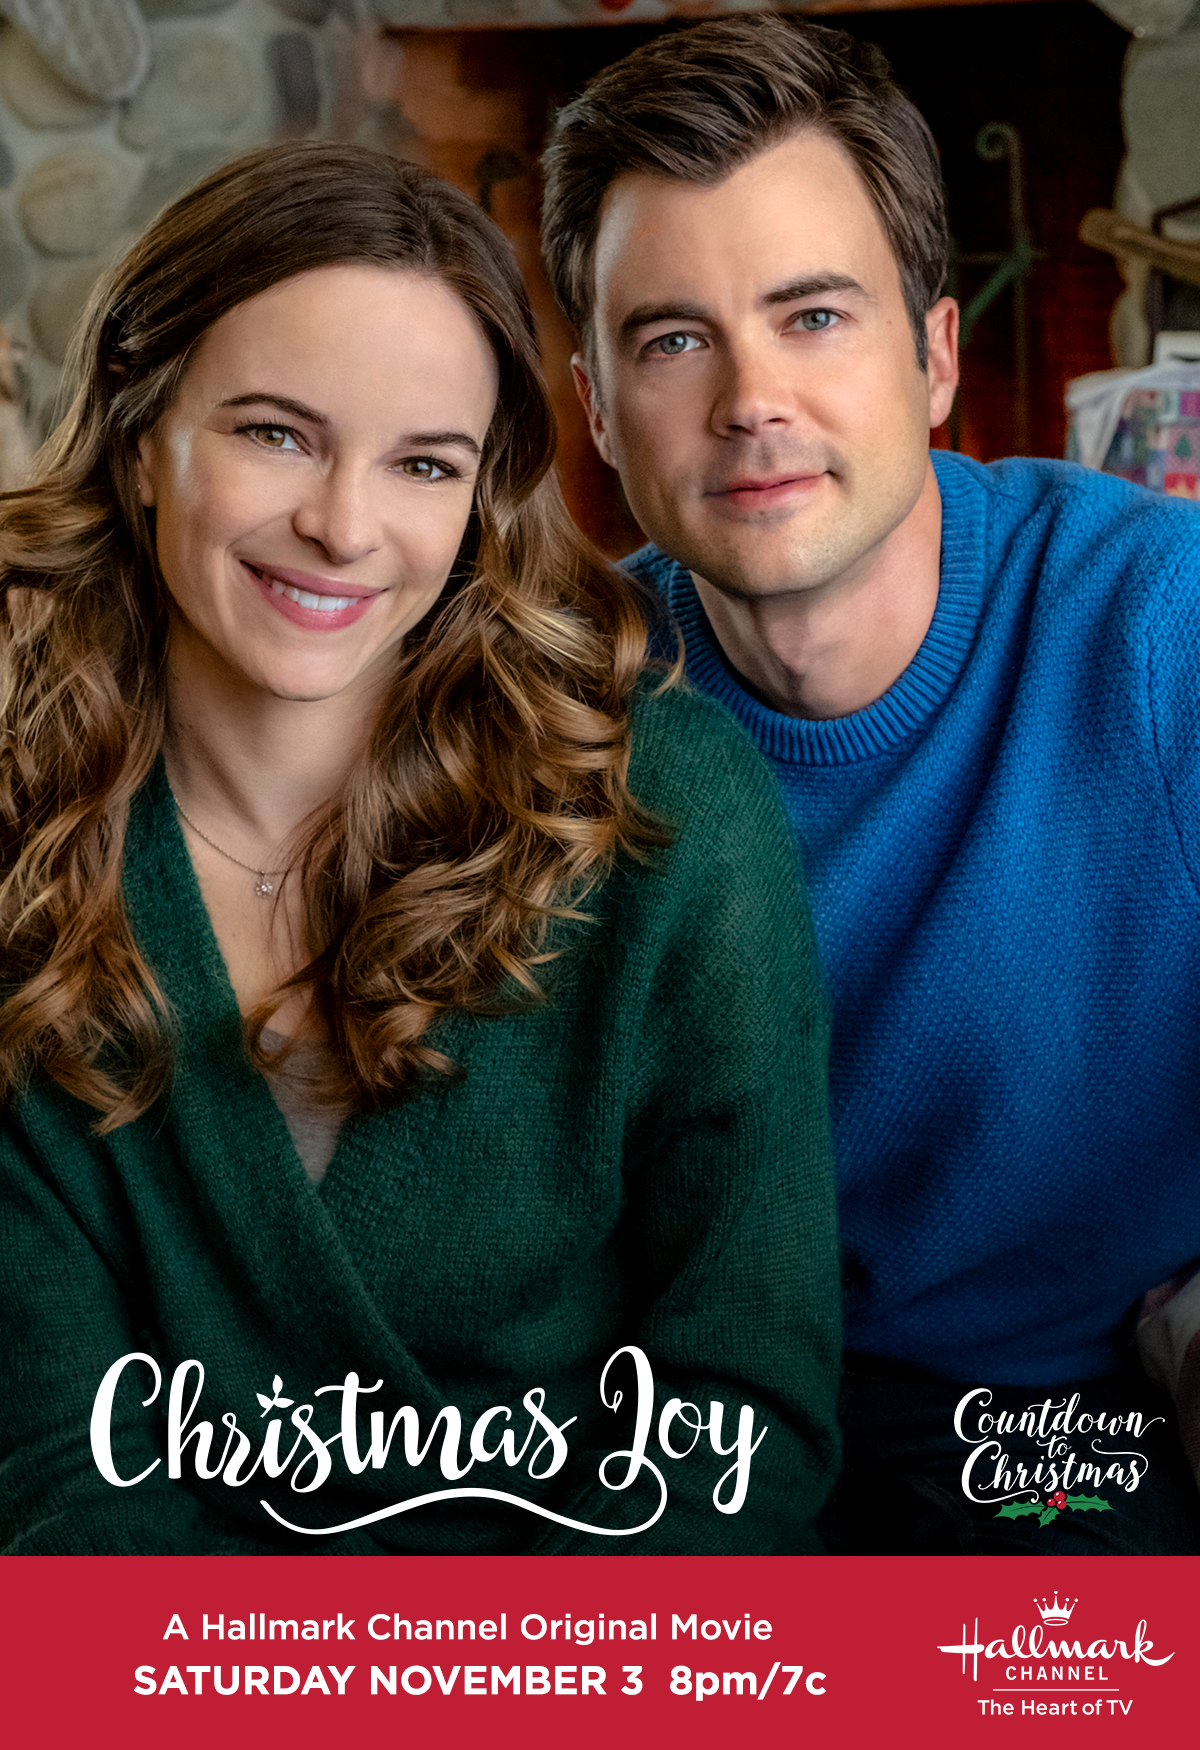 Danielle Panabaker And Matt Long Rekindle Their Friendship And Perhaps More In Christmas Joy Prem Christmas Movies Hallmark Movies Hallmark Christmas Movies